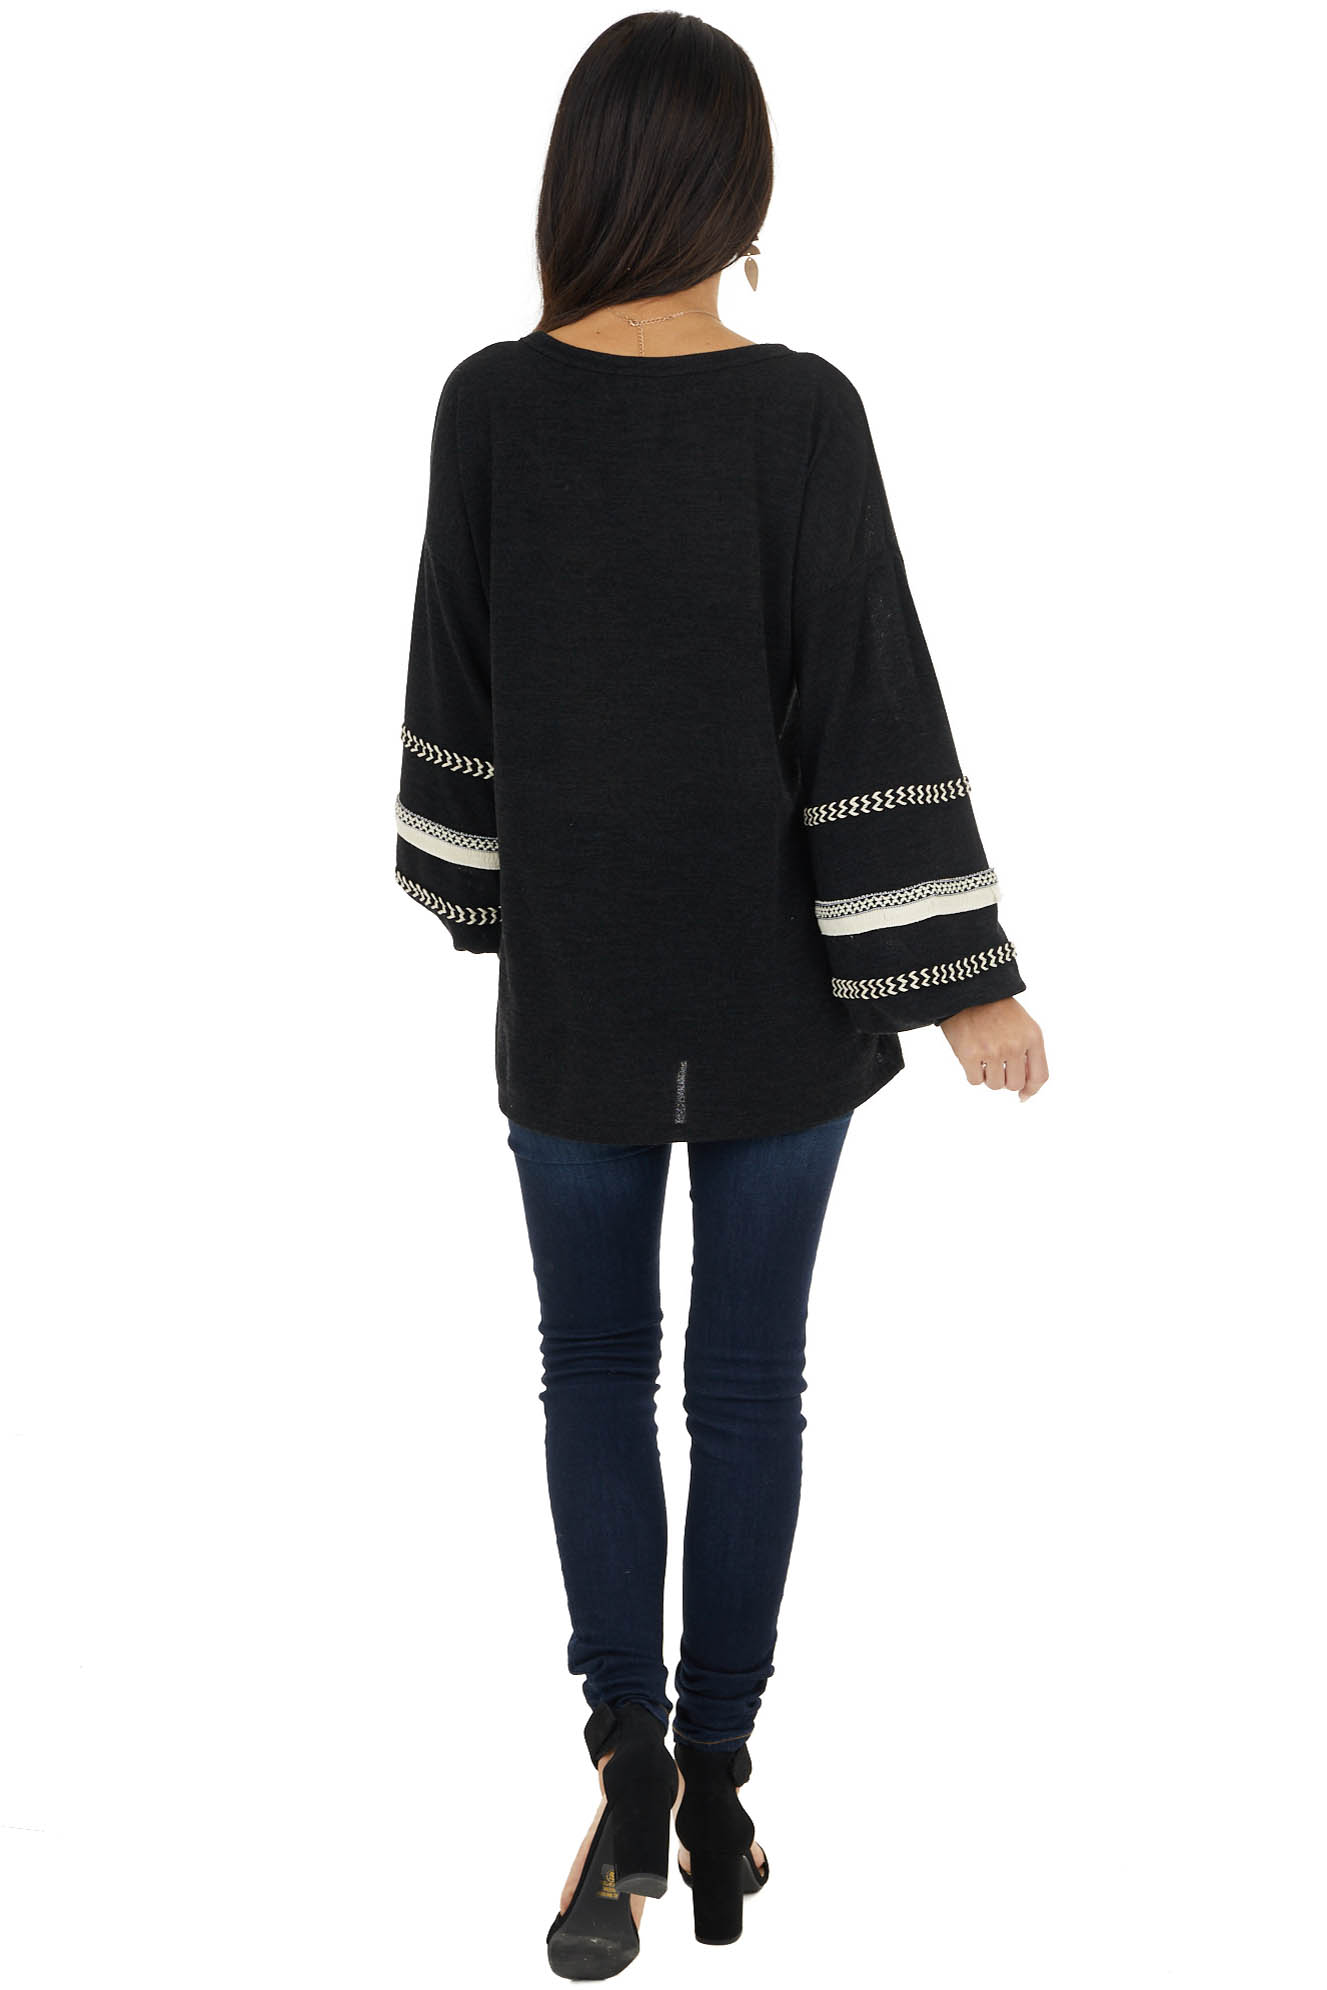 Black Long Bubble Sleeve Top with Textured Thread Detail